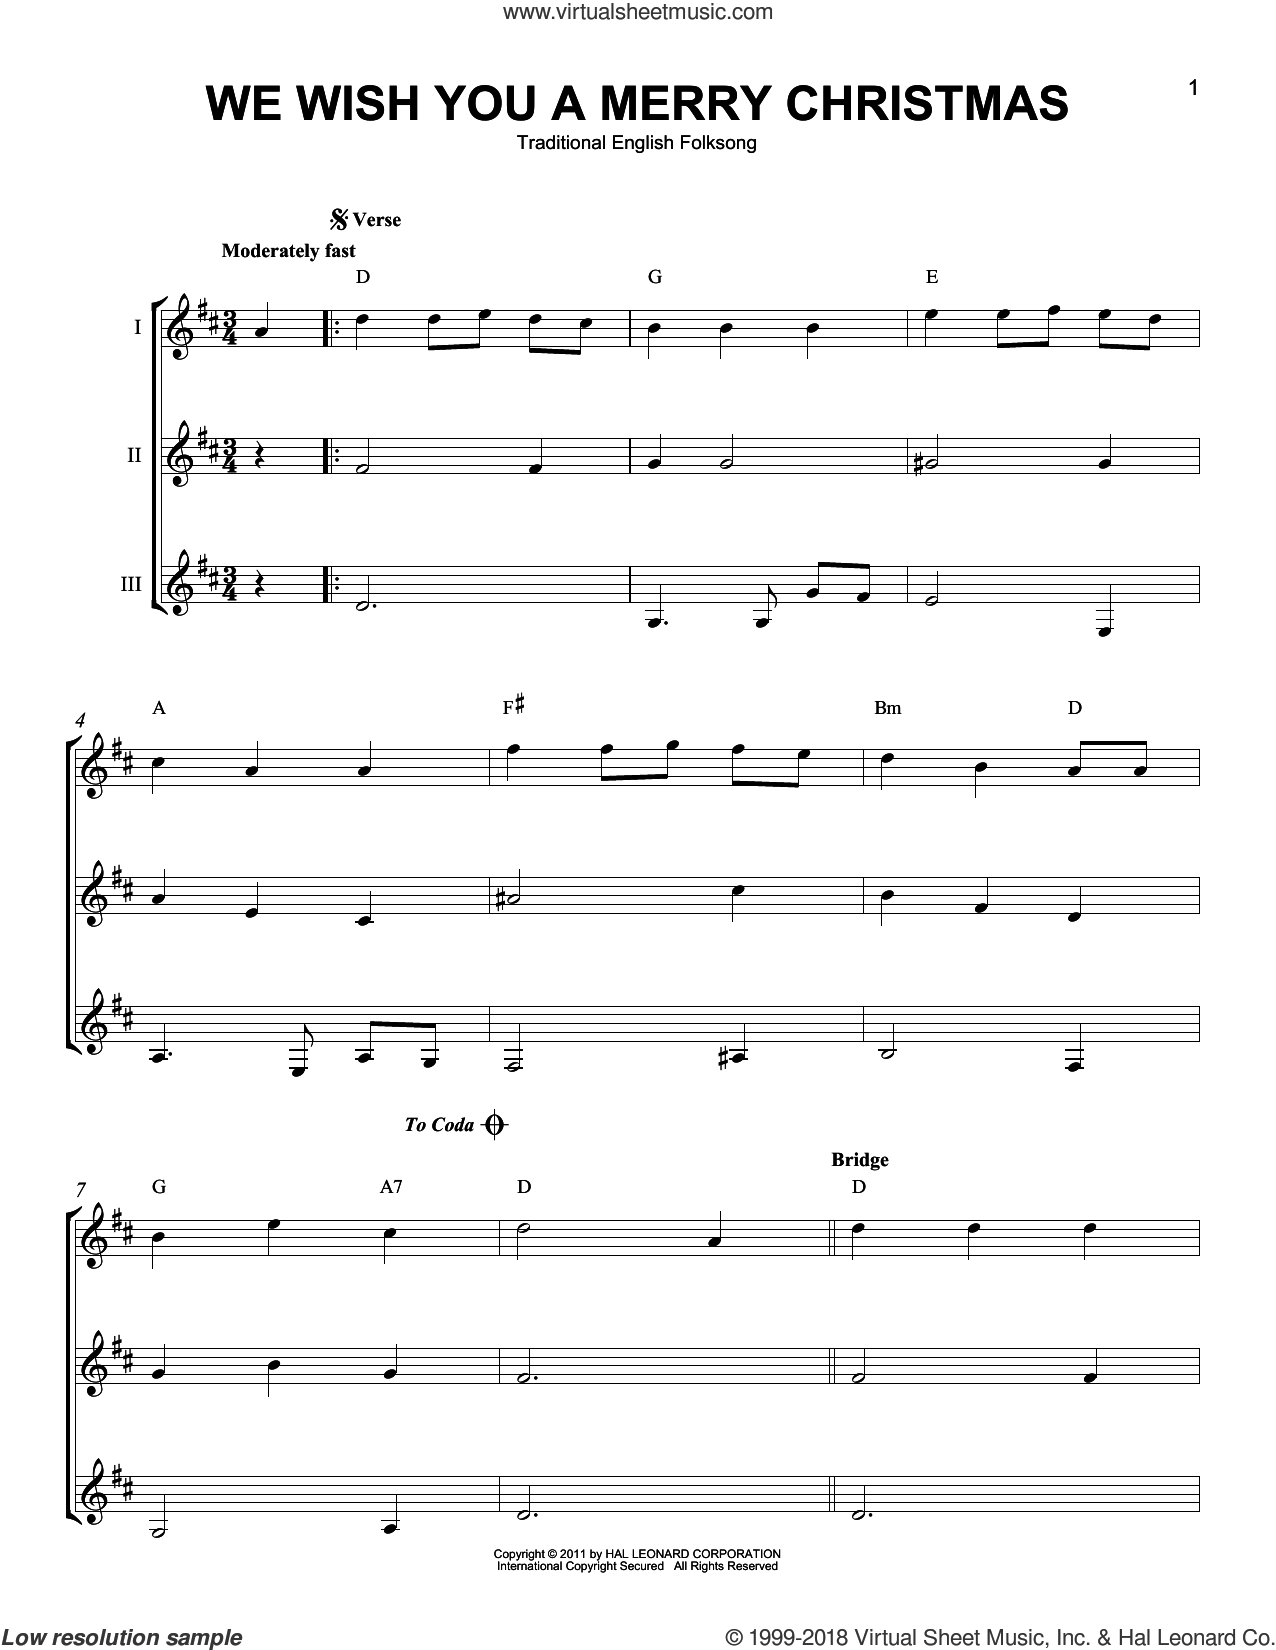 We Wish You A Merry Christmas sheet music for guitar ensemble, intermediate skill level